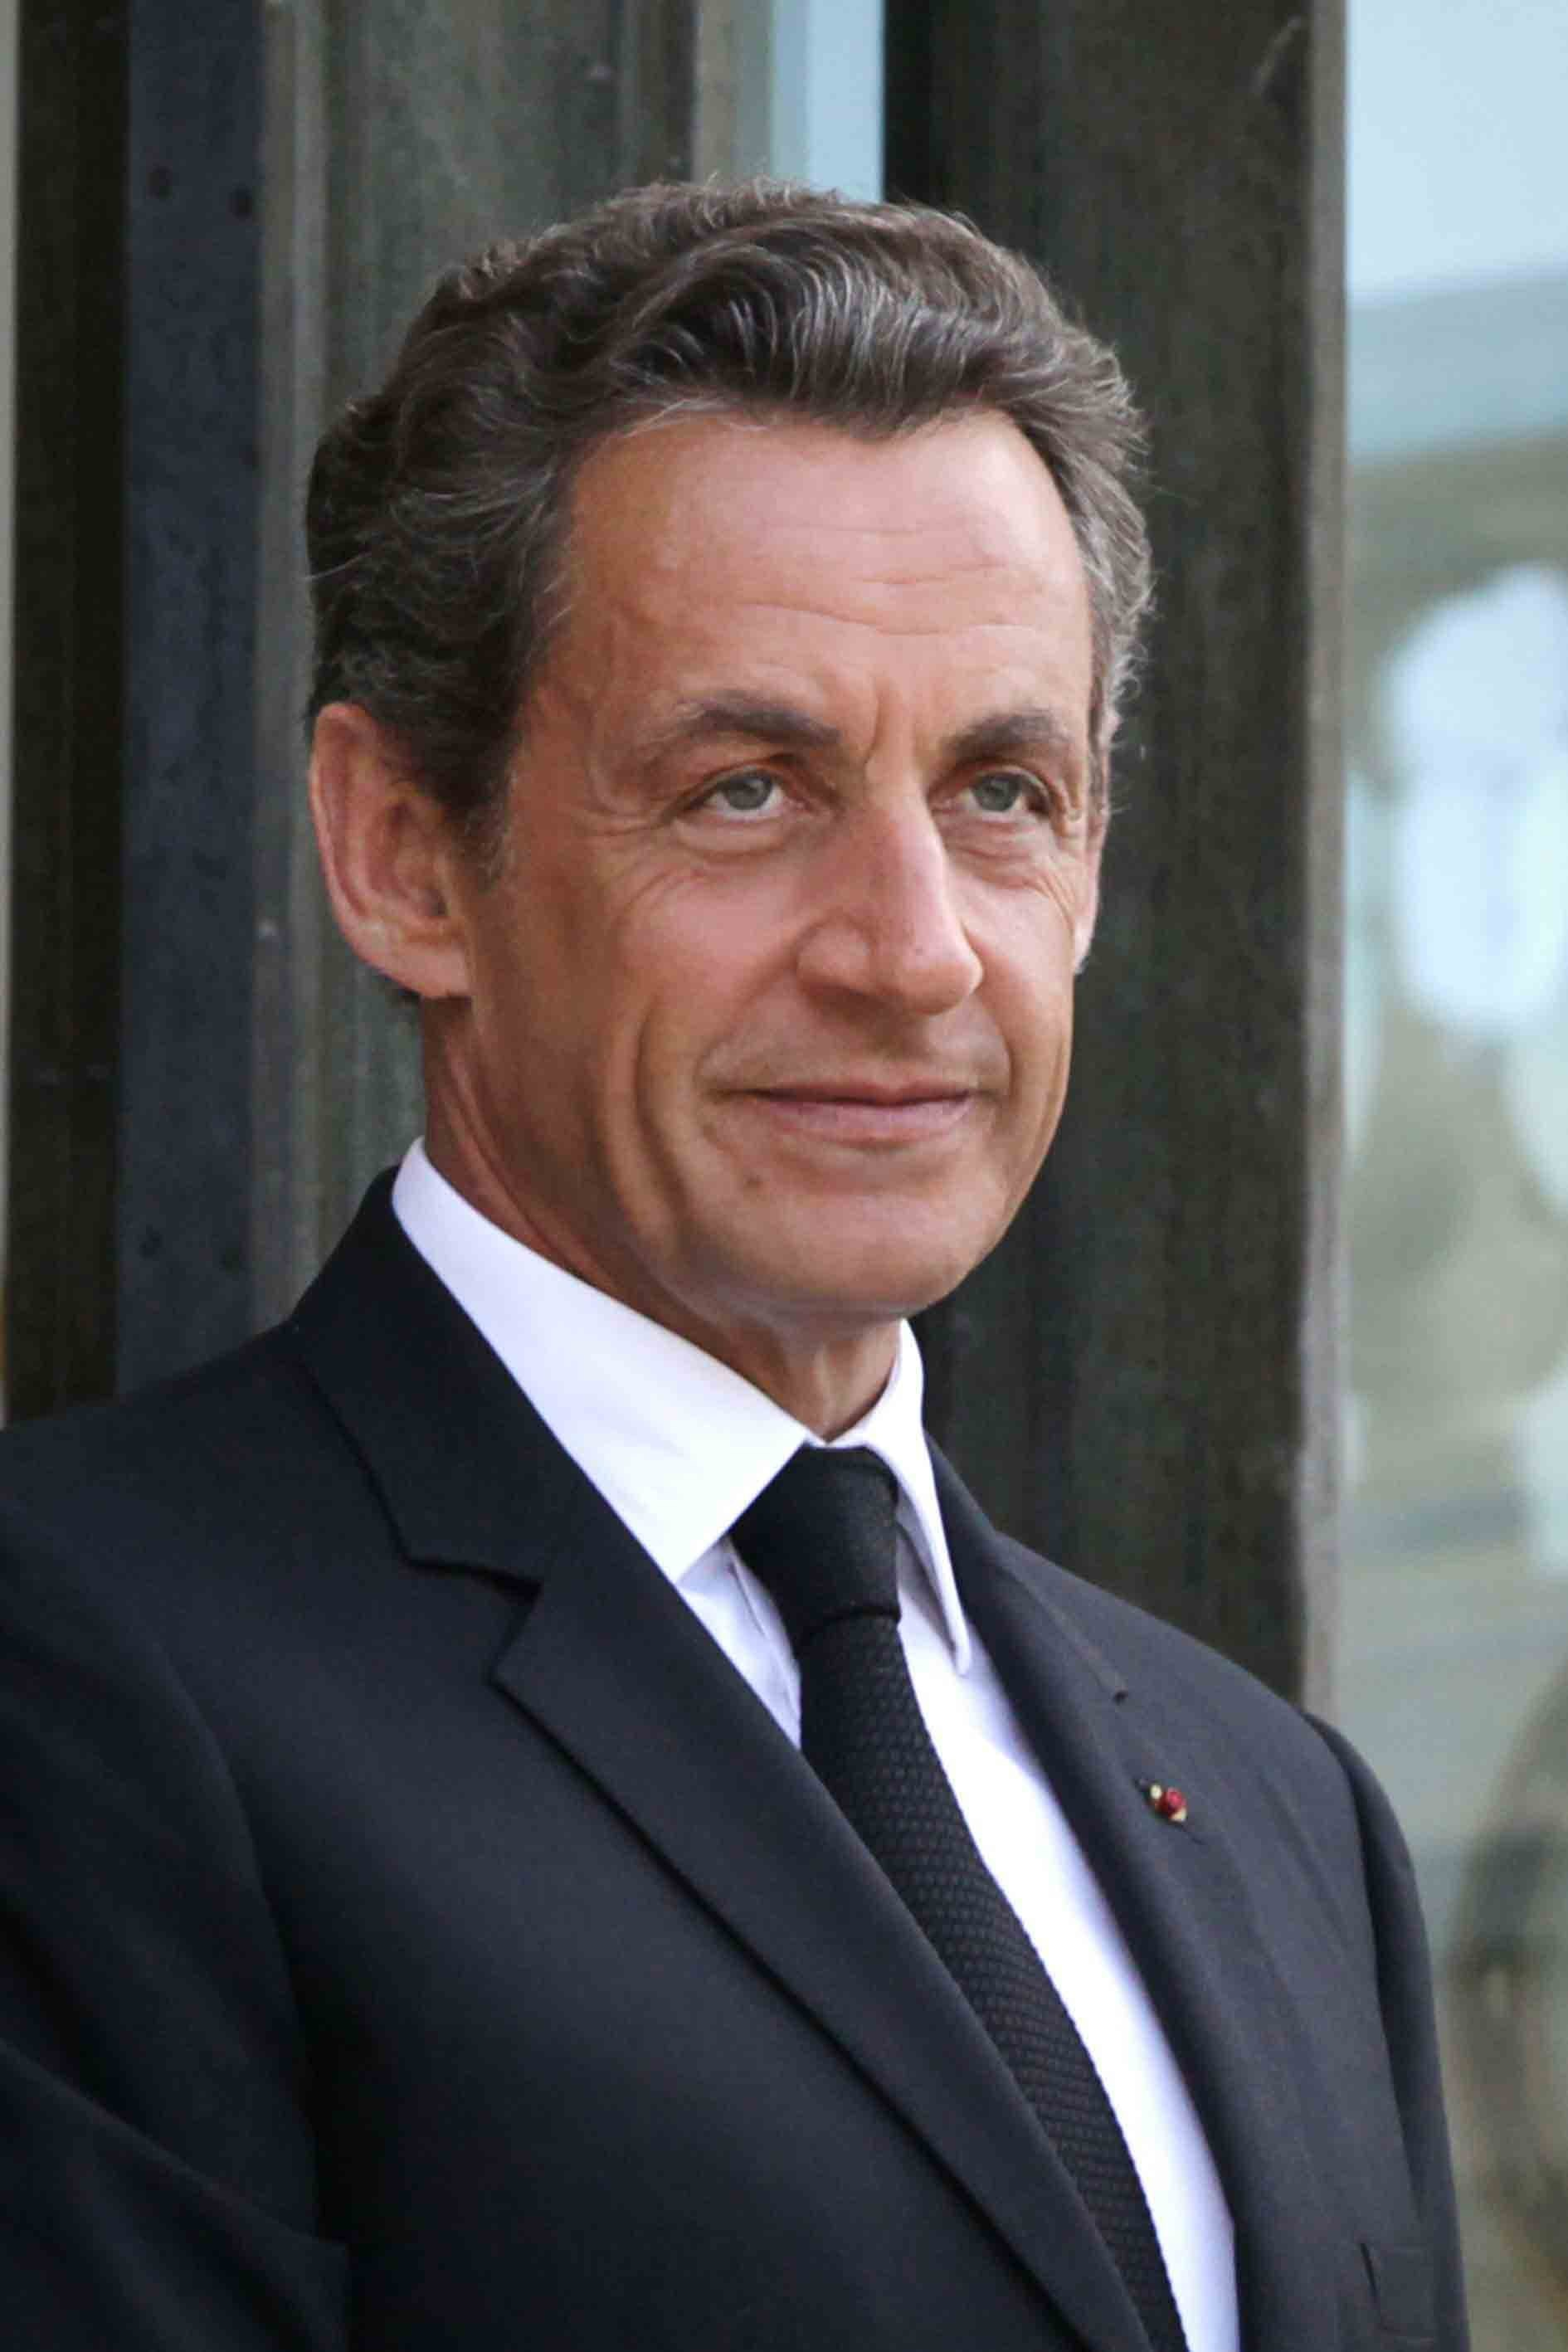 Nicolas Sarkozy | Known people - famous people news and ...